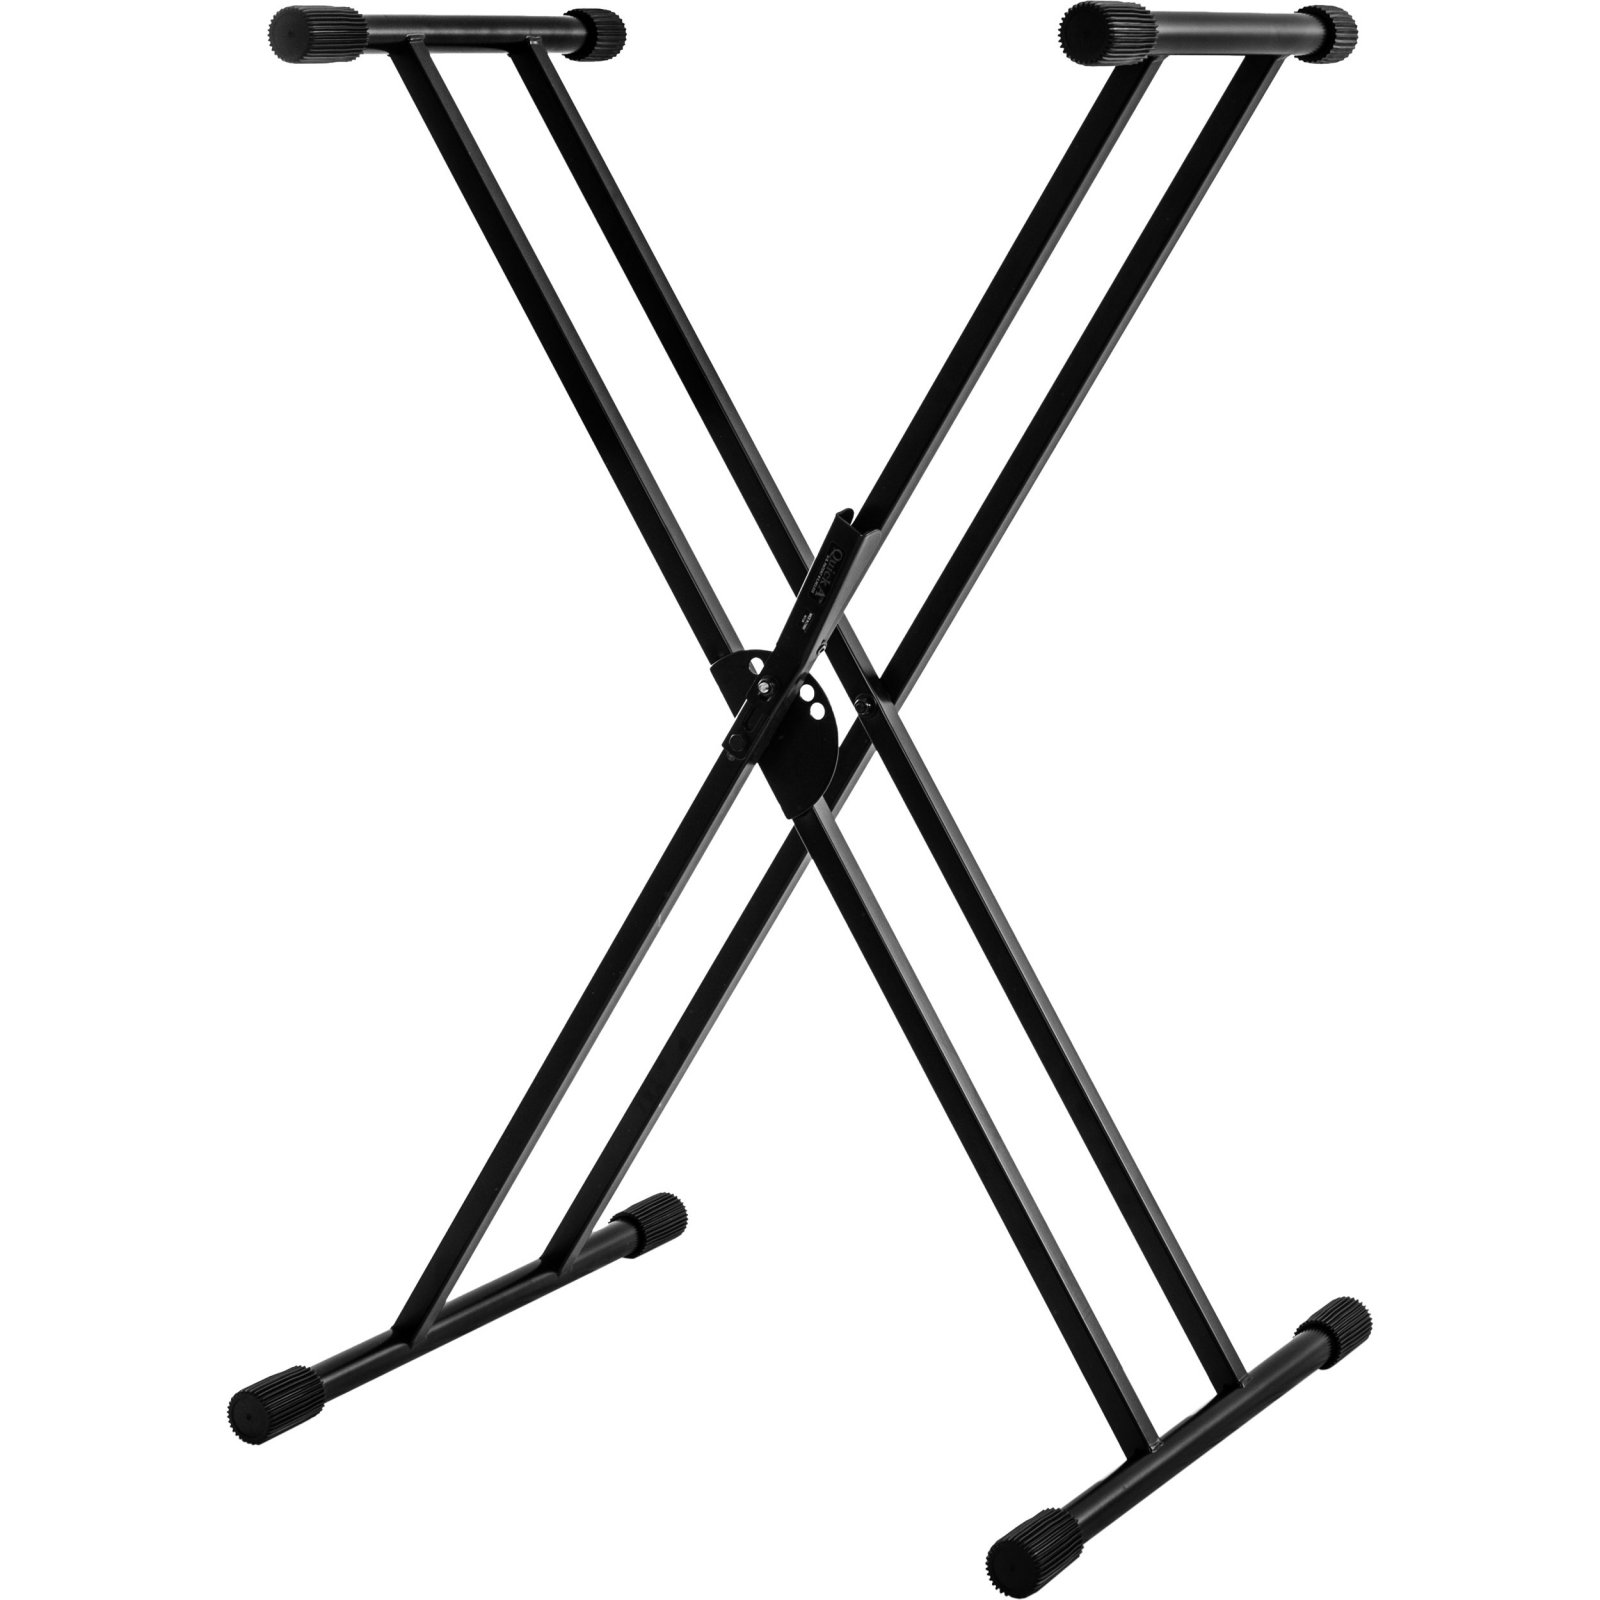 Nomad NKS-K139 Double X Keyboard Stand